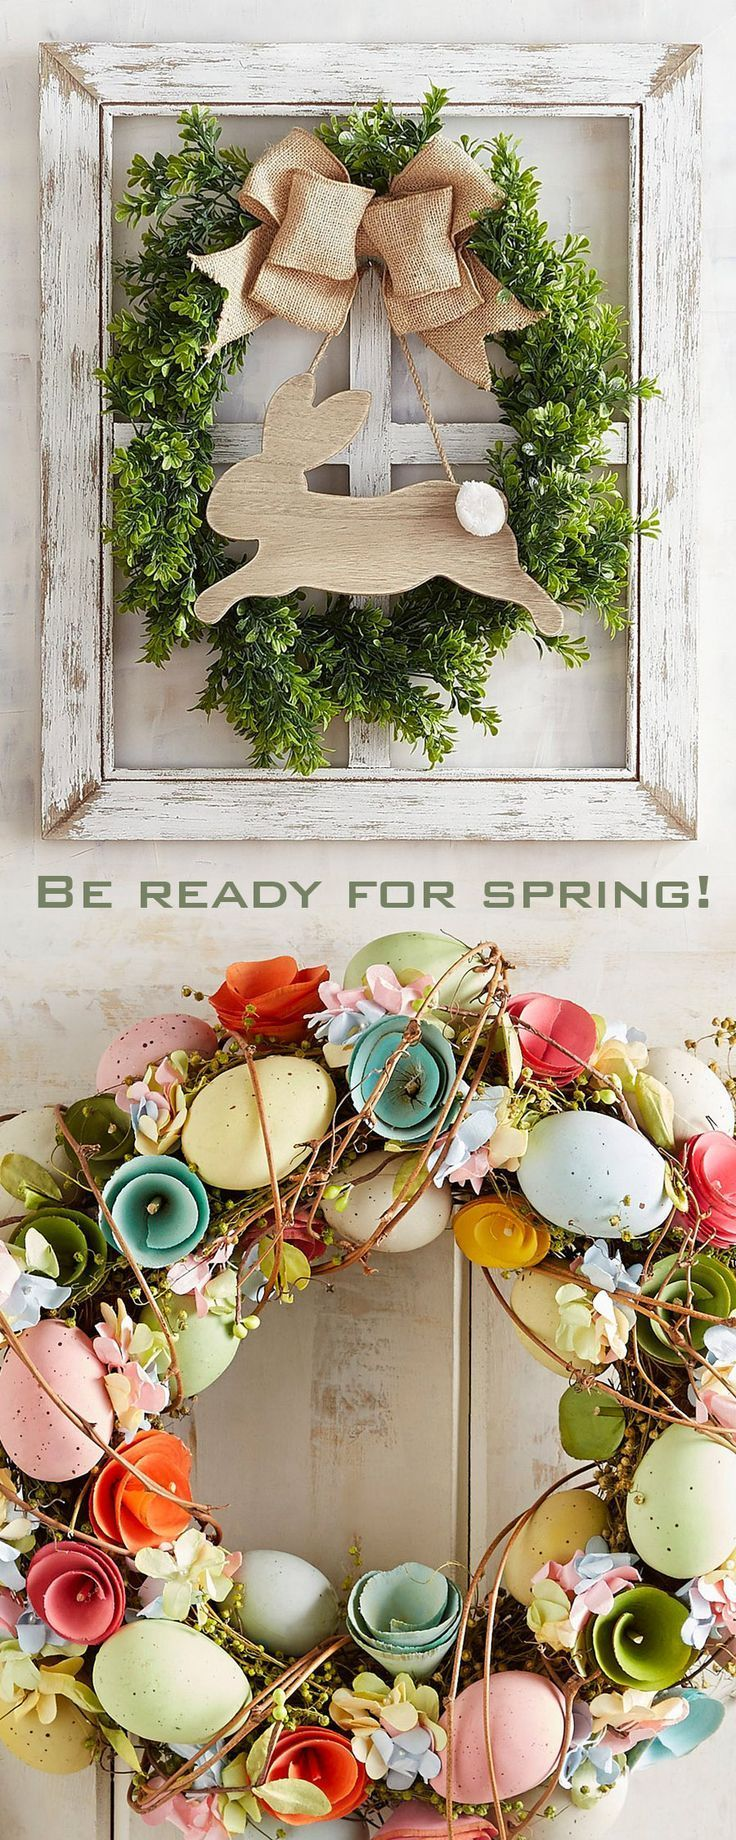 Adorable spring and Easter wall art and wreaths add life to your home decor or front door. #homedecor #easter #spring #wallart #wreaths #frontdoor #ad